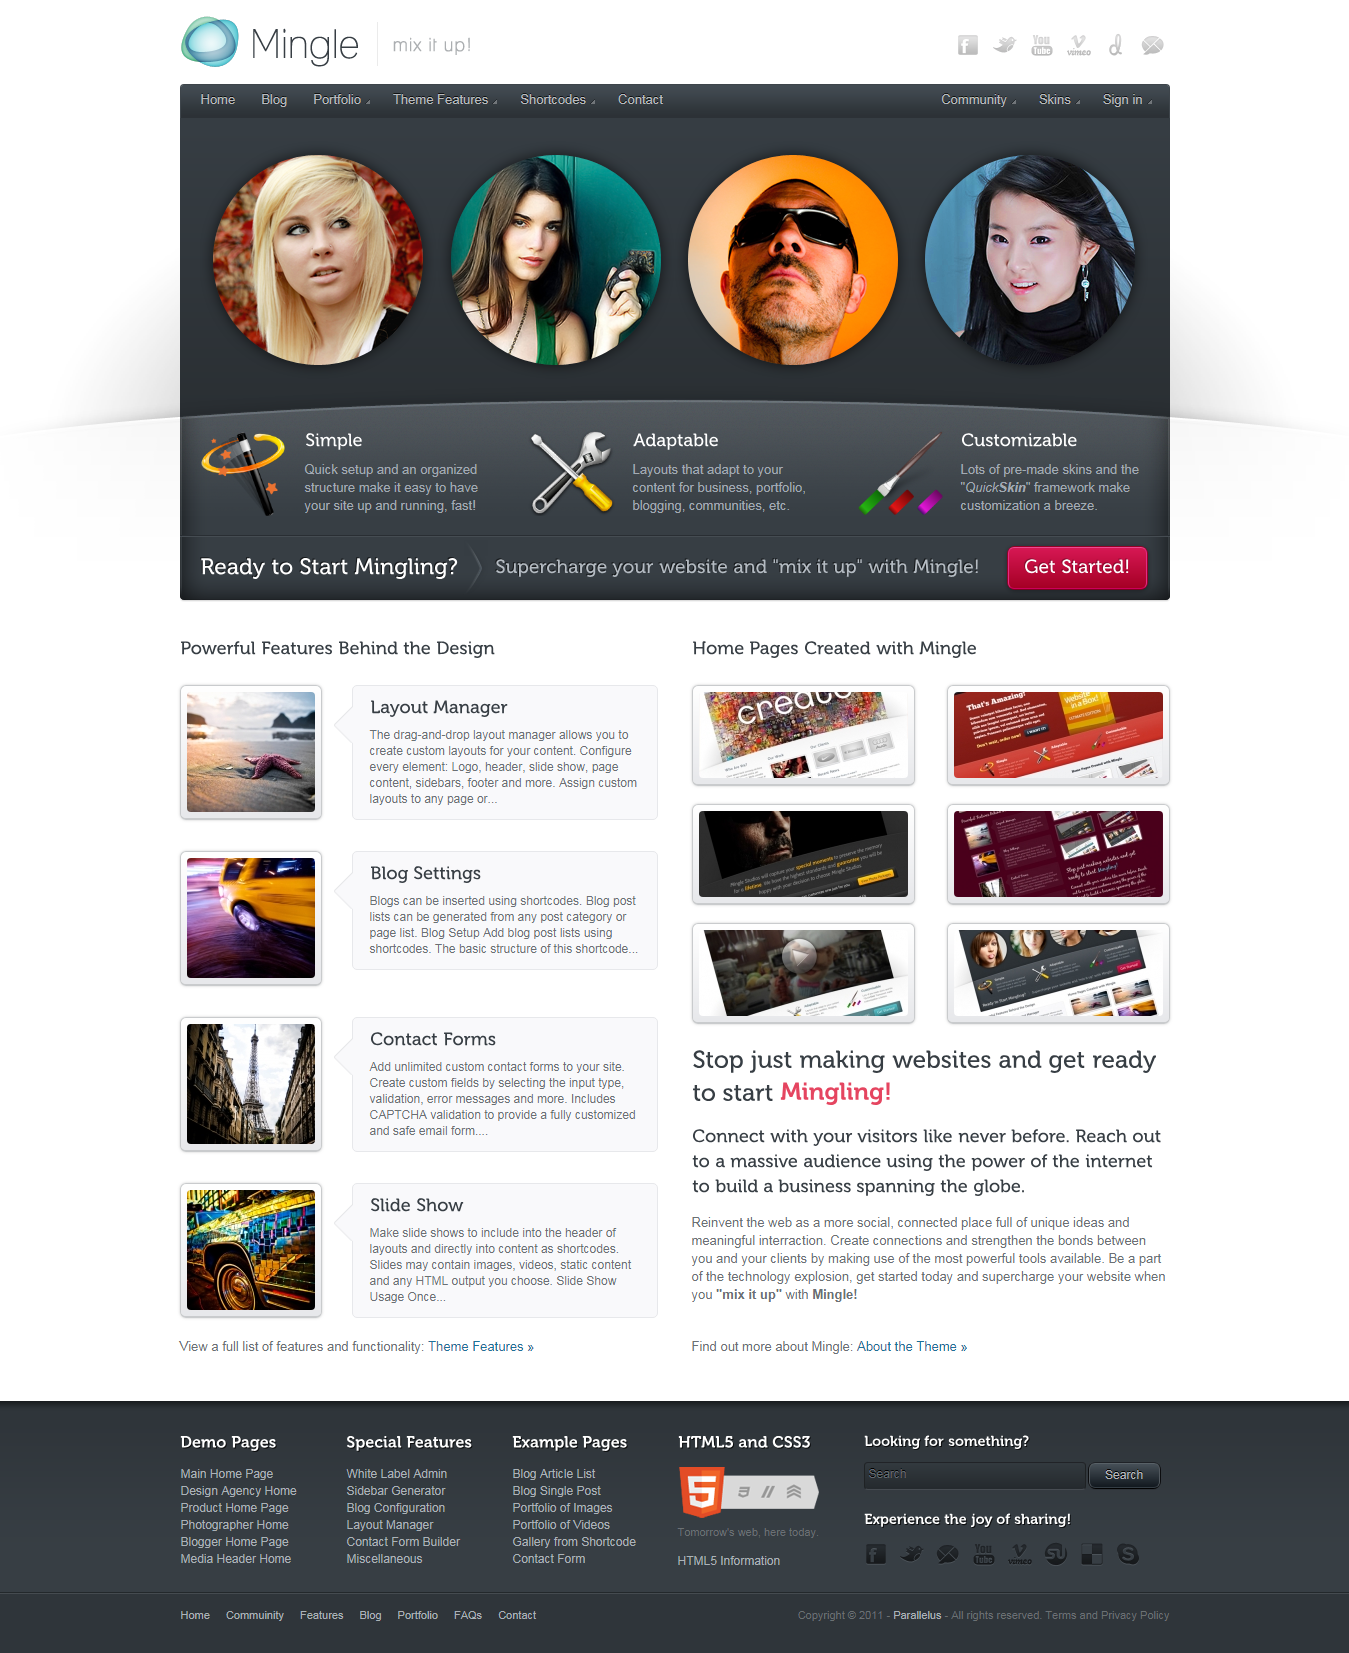 mingle best premium buddypress wordpress theme - 10+ Best Premium BuddyPress WordPress Themes